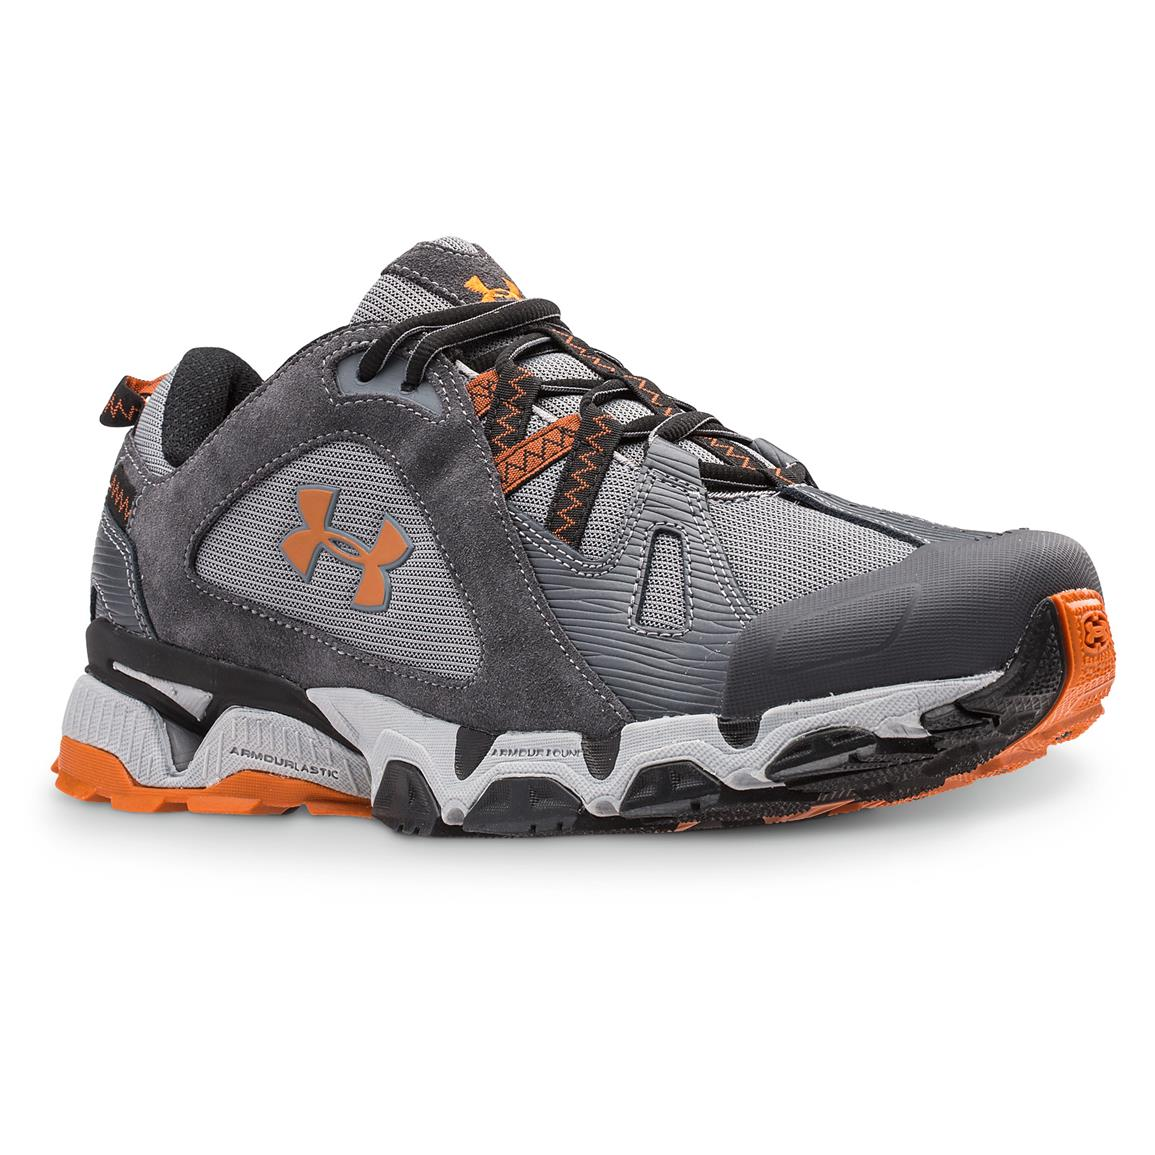 Under Armour Men's Chetco Trail Running Shoes, Graphite / Steel / Rodeo Orange